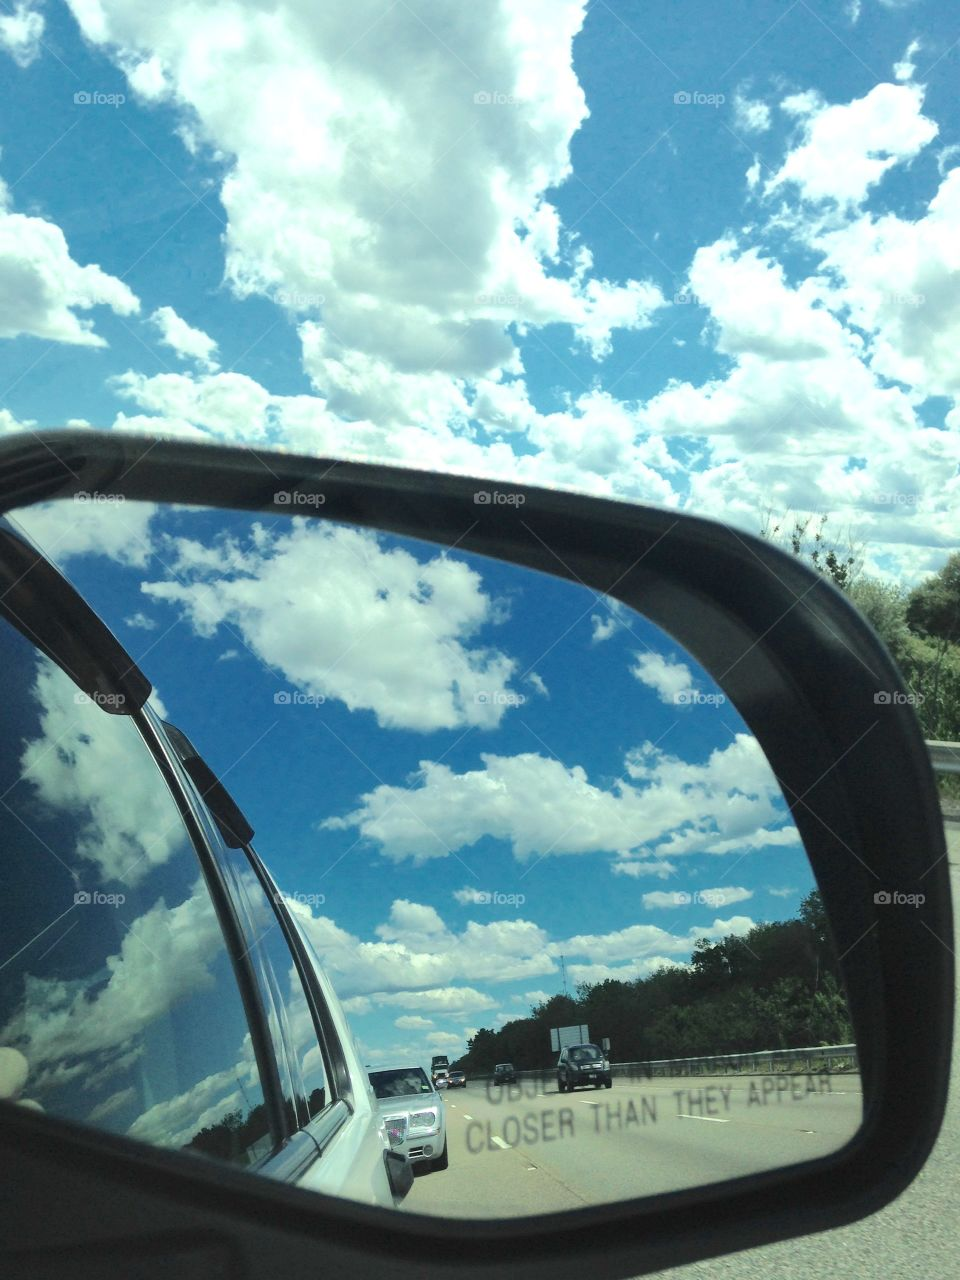 Rear View Mirror Clouds & Sky. Clouds in Rear View Mirror, Sky, Reflecting on Car. Amazing picture. Glad for my IPhone! Blue sky, white fluffy clouds.